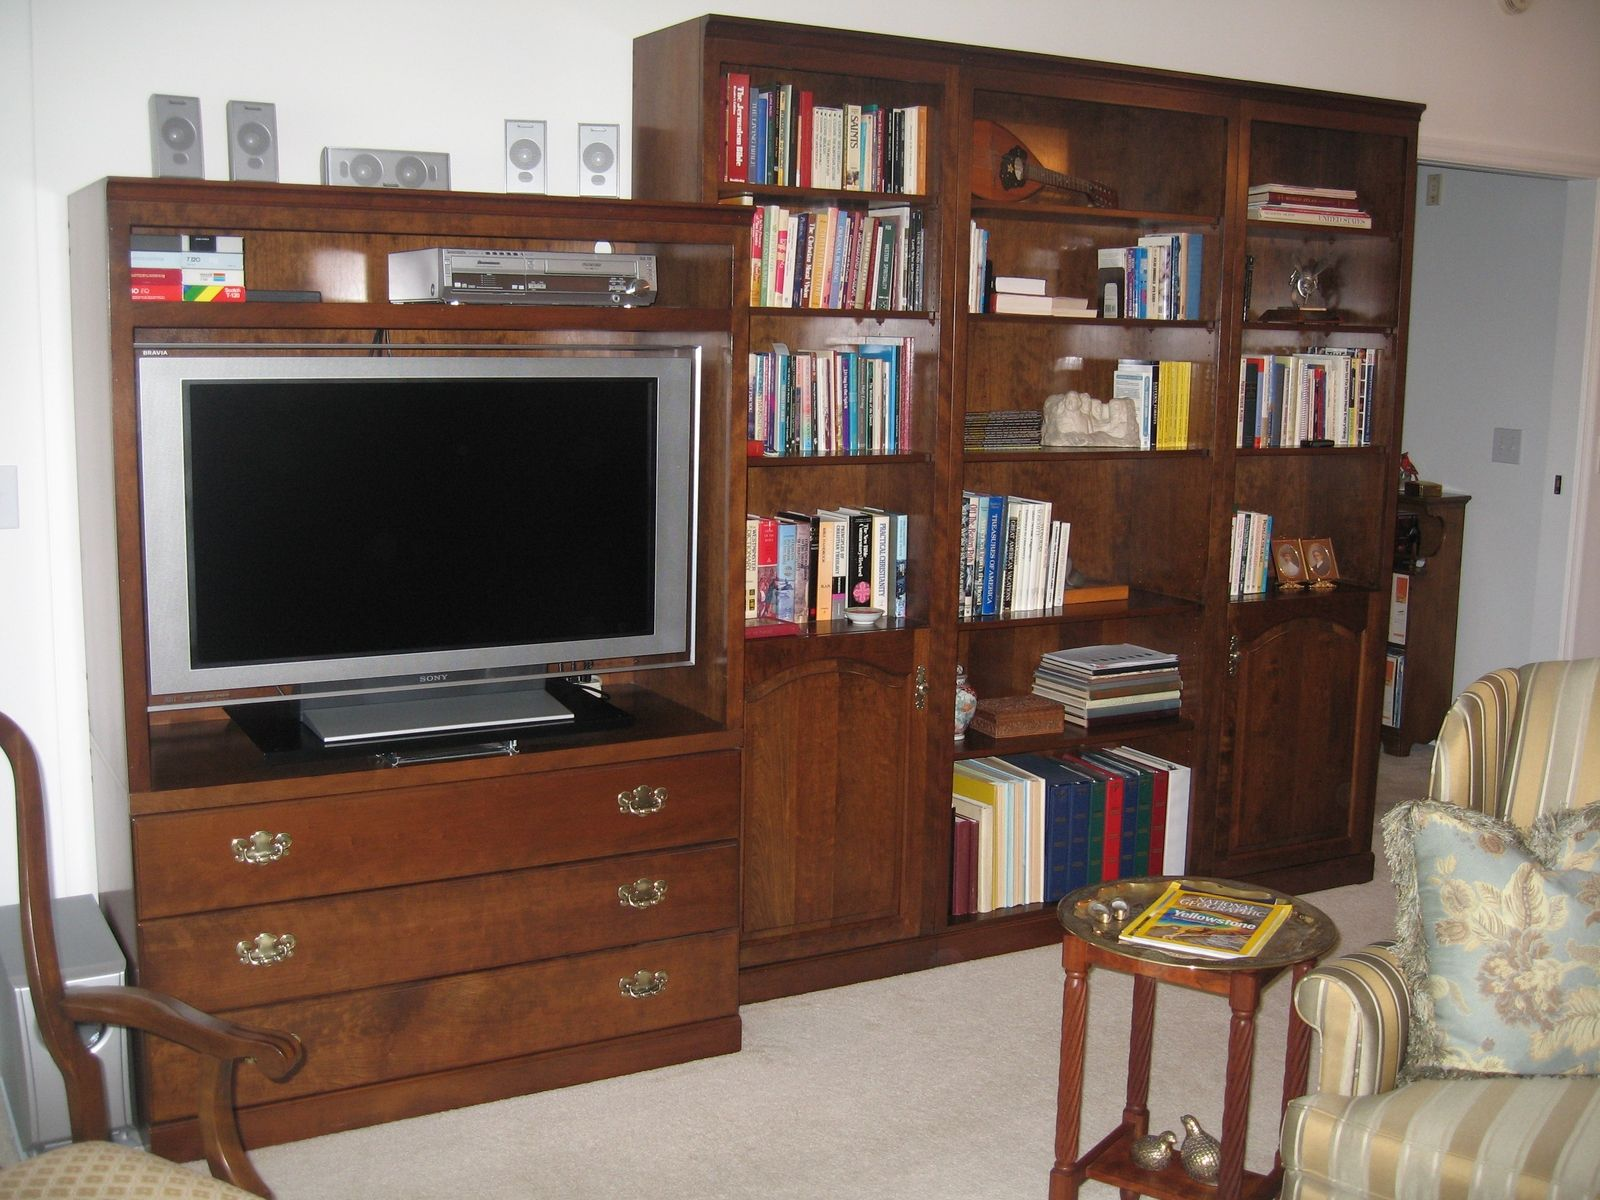 Tall Living Room Cabinets Living Room Cabinets And Shelves Living Room Cabinets Shelves